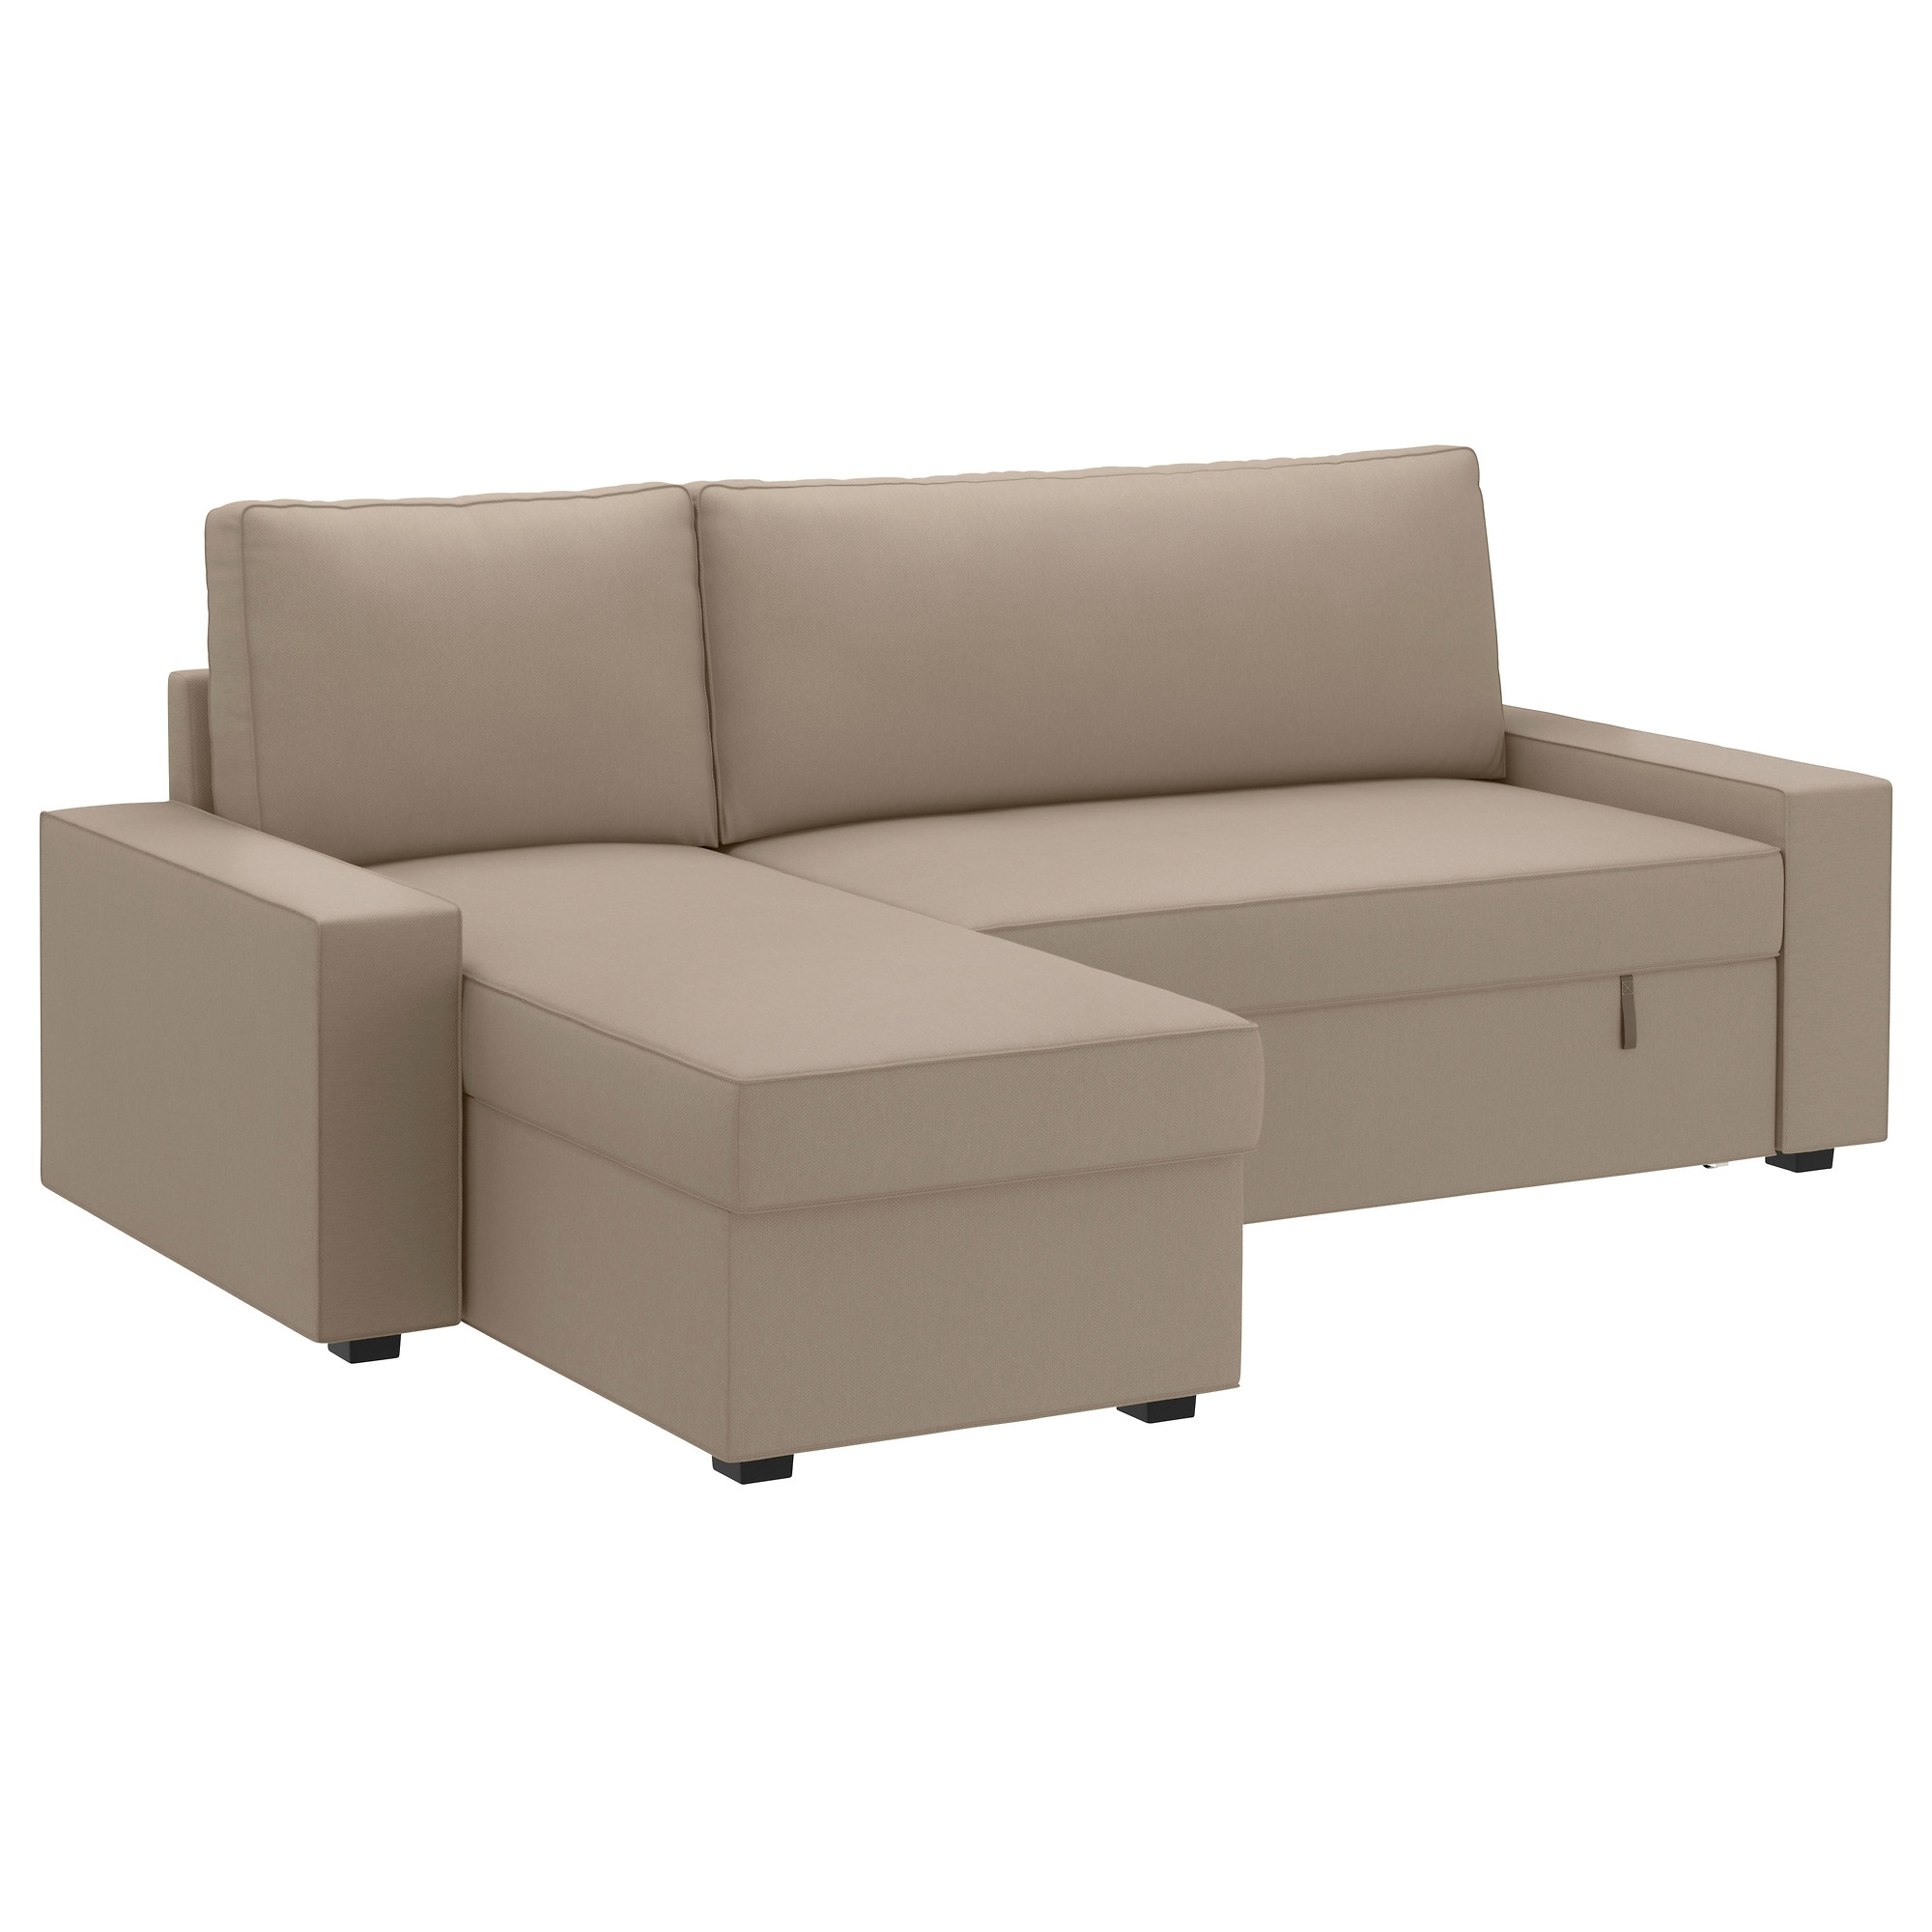 New With Regard To Most Current Chaise Sofa Beds (View 10 of 15)